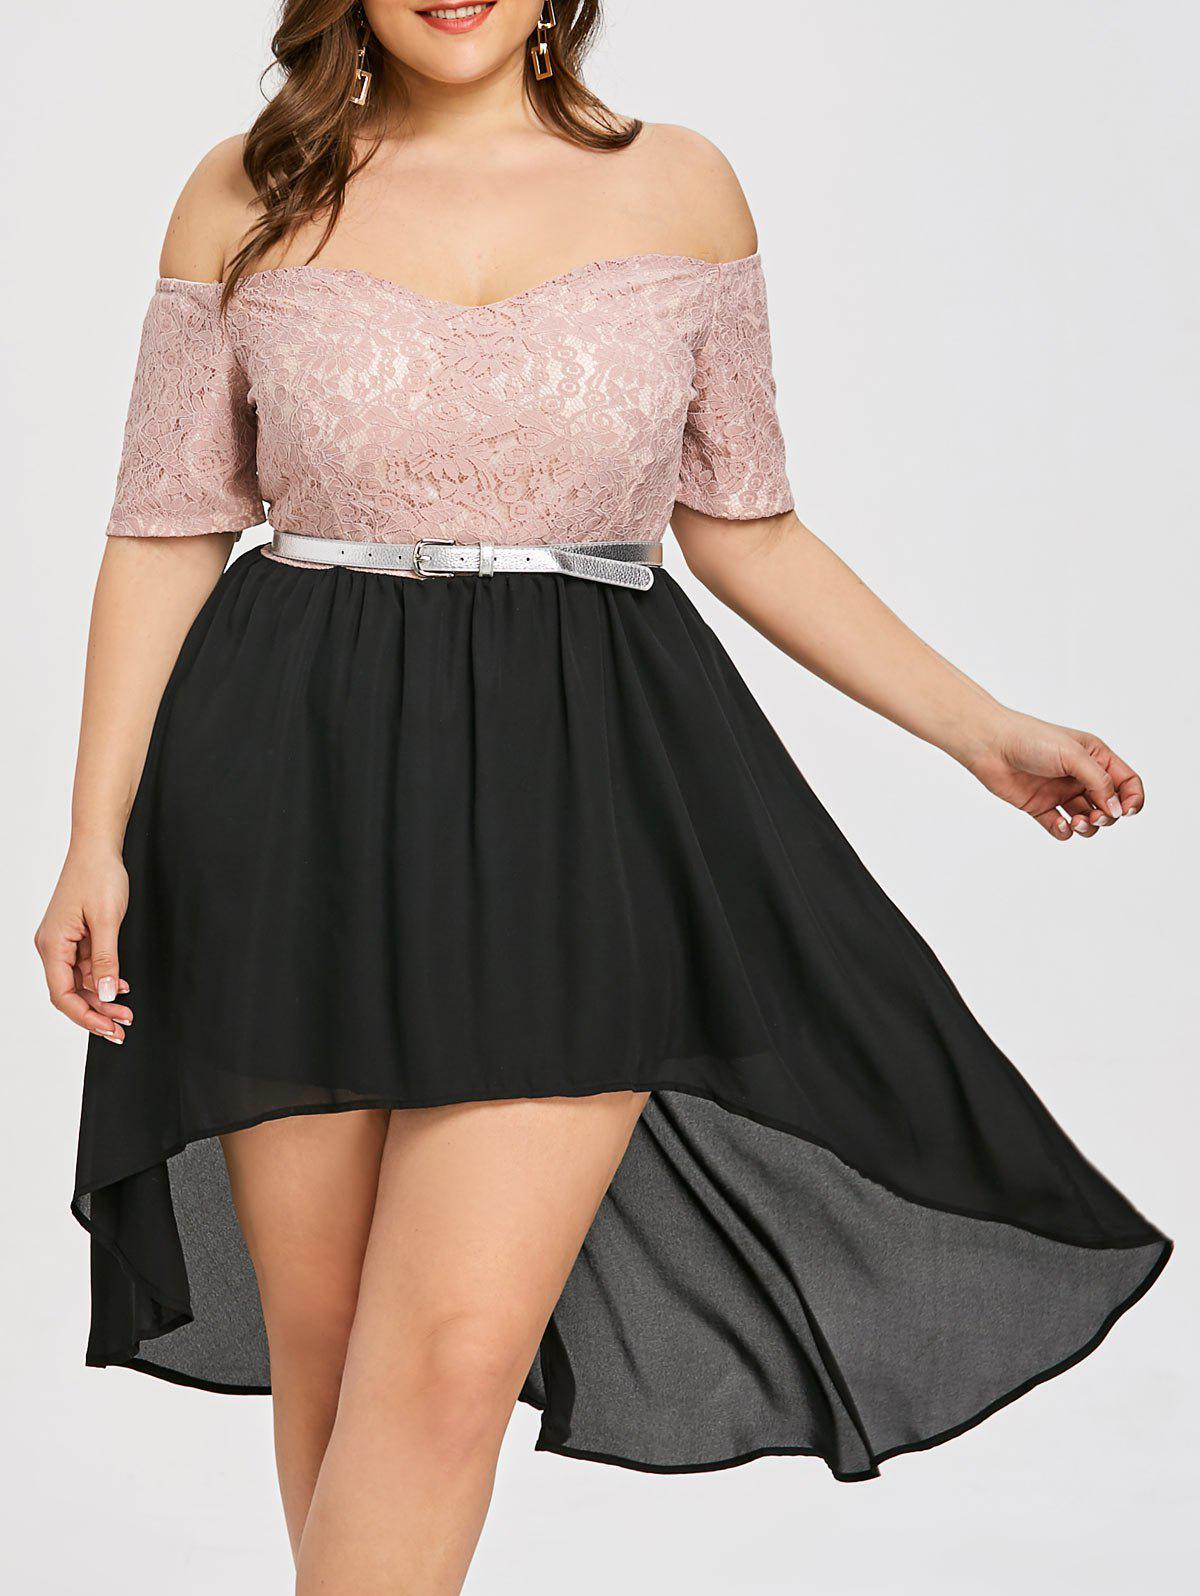 2018 Plus Size Off The Shoulder Homecoming Dress Blackpink Xl In